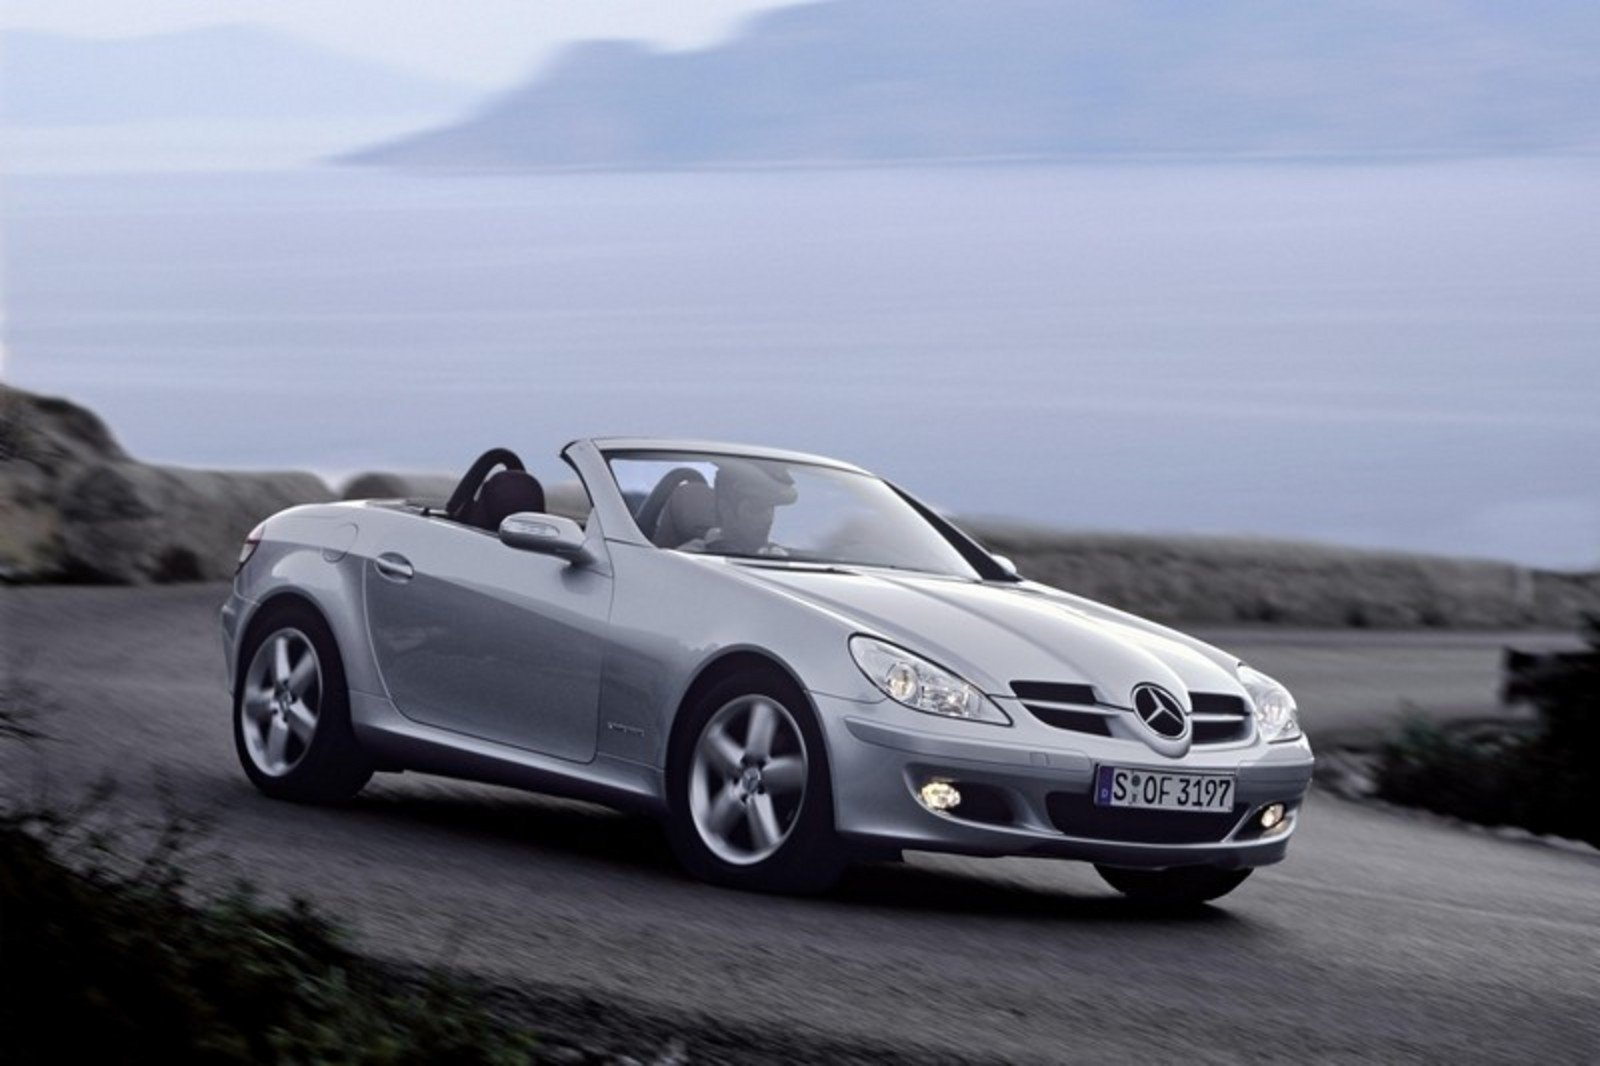 2005 mercedes slk class review top speed for Mercedes benz slk 2006